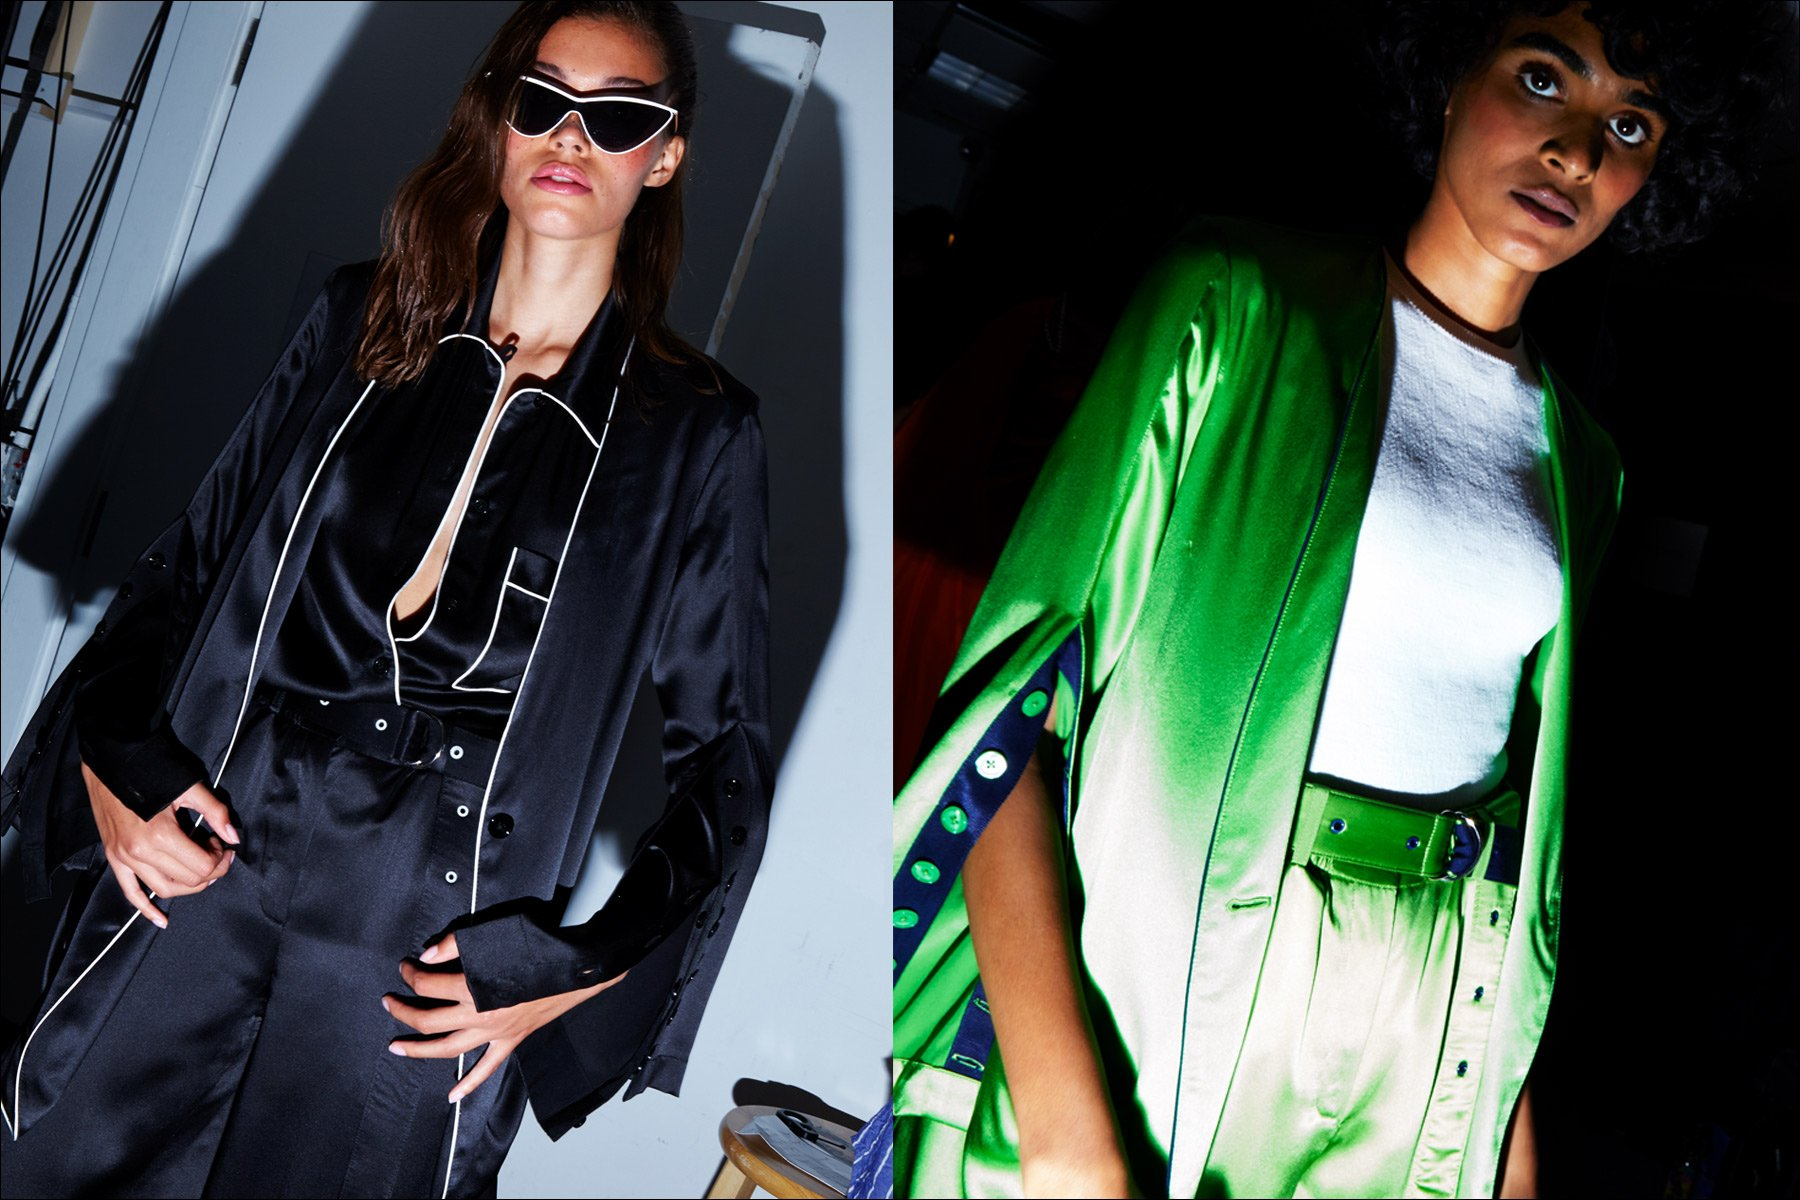 Danielle Lashley & Radhika Nair photographed before walking for Adam Selman S/S18 collection. Photography by Alexander Thompson for Ponyboy magazine NY.